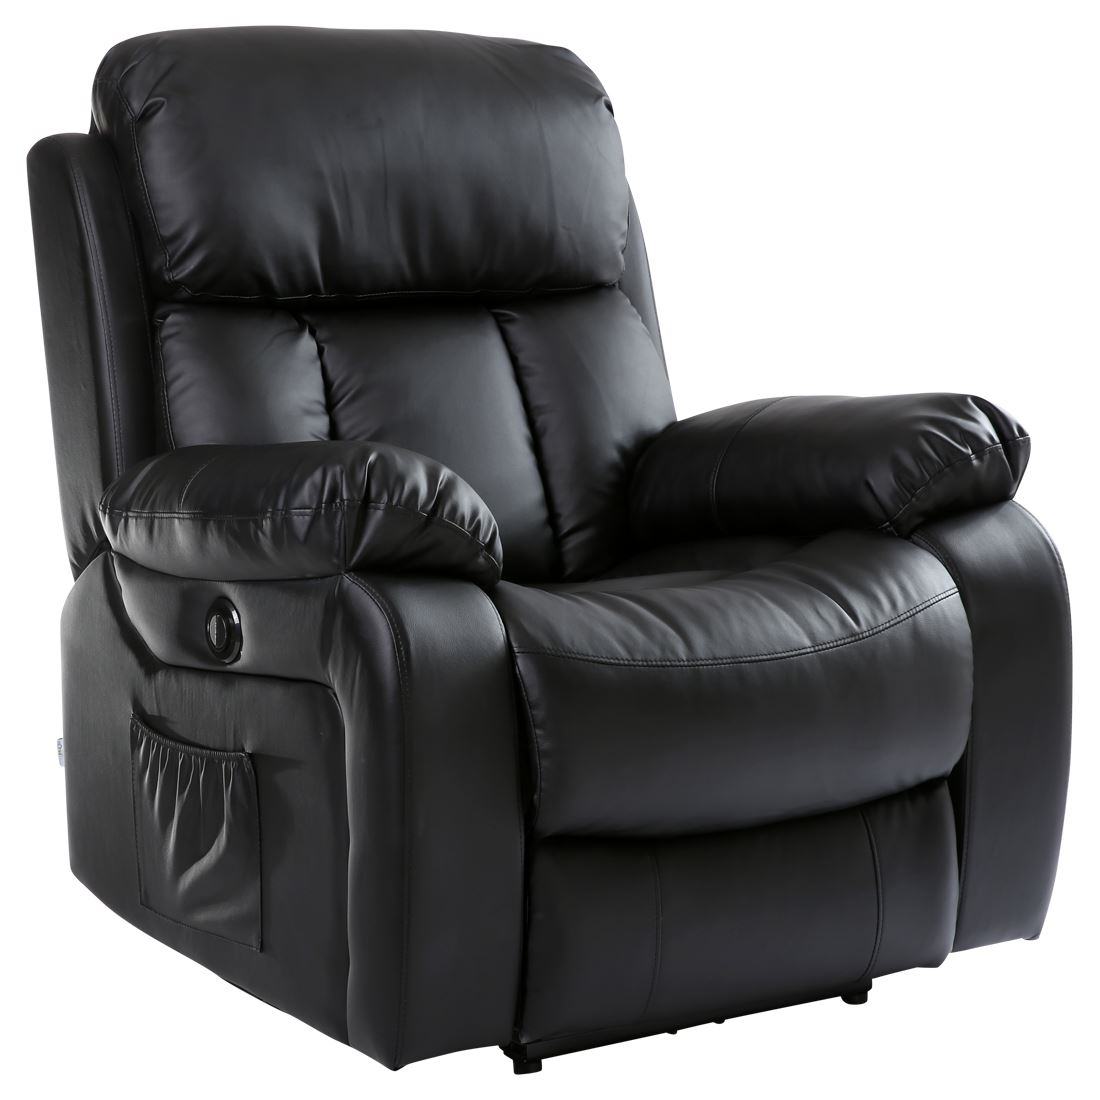 CHESTER-ELECTRIC-HEATED-LEATHER-MASSAGE-RECLINER-CHAIR-SOFA-  sc 1 st  eBay & CHESTER ELECTRIC HEATED LEATHER MASSAGE RECLINER CHAIR SOFA GAMING ... islam-shia.org